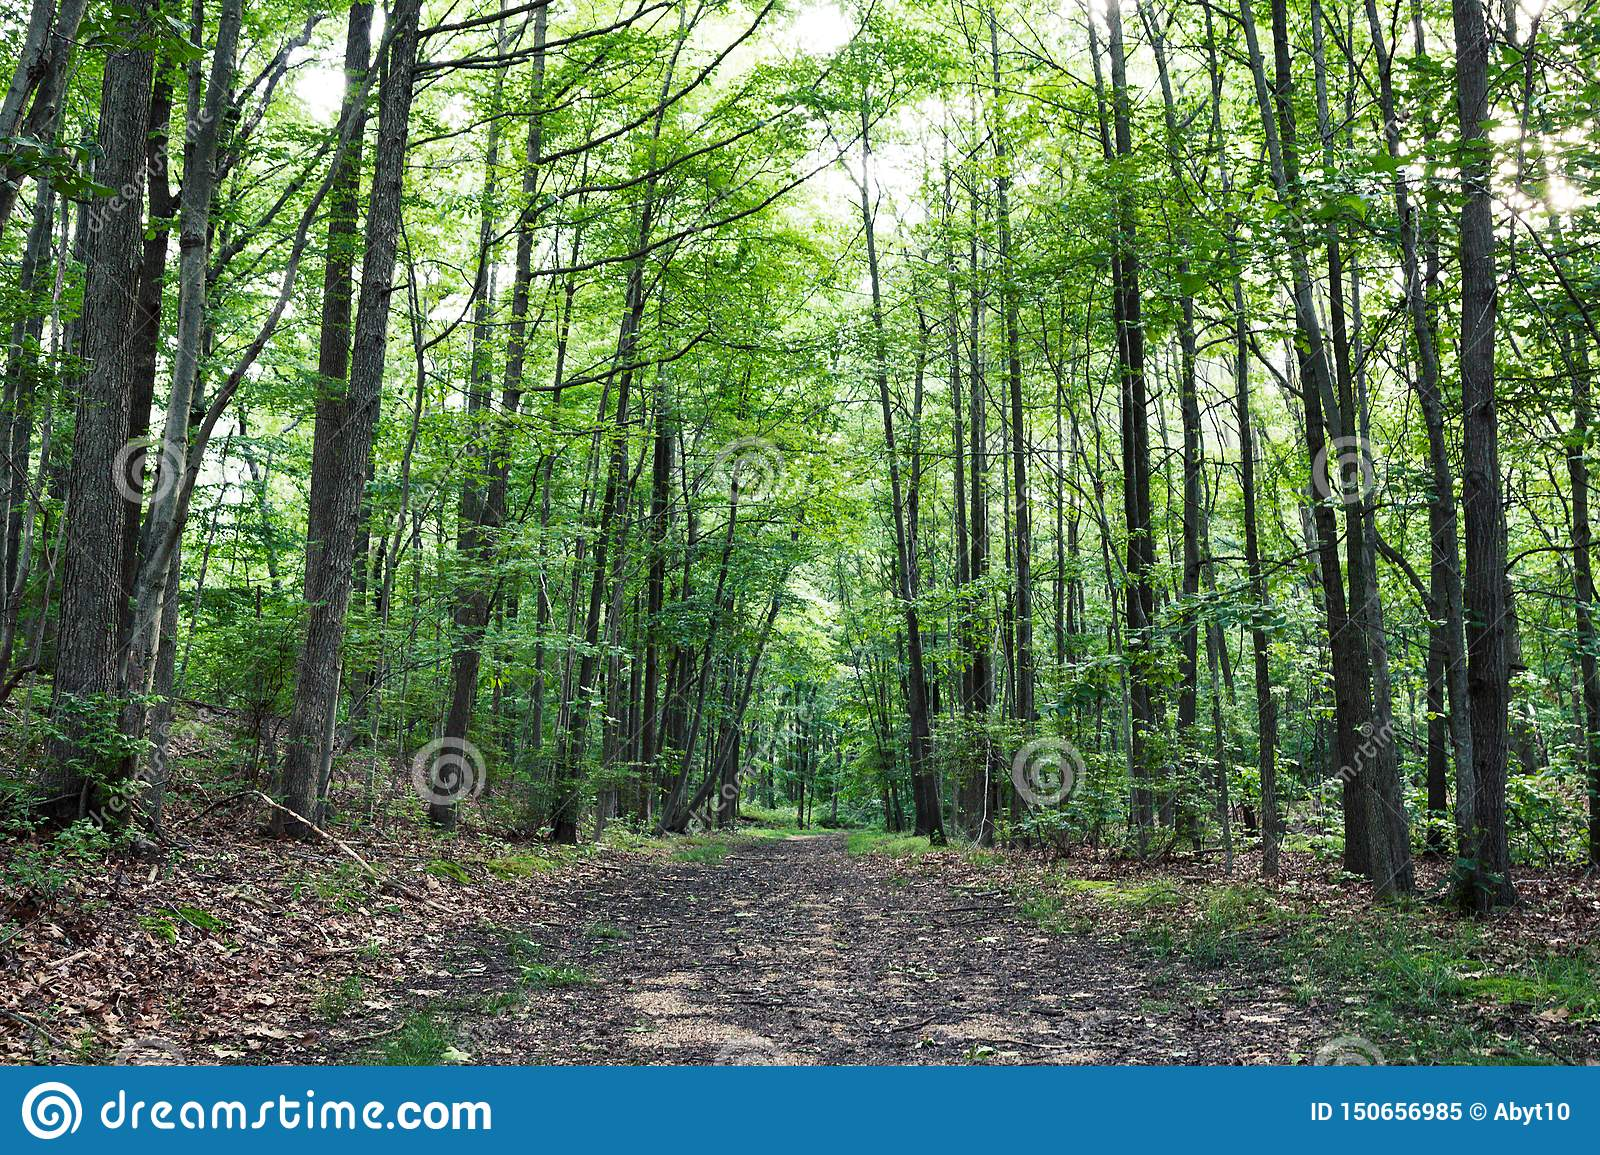 Most beautiful Hiking trails in New Jersey